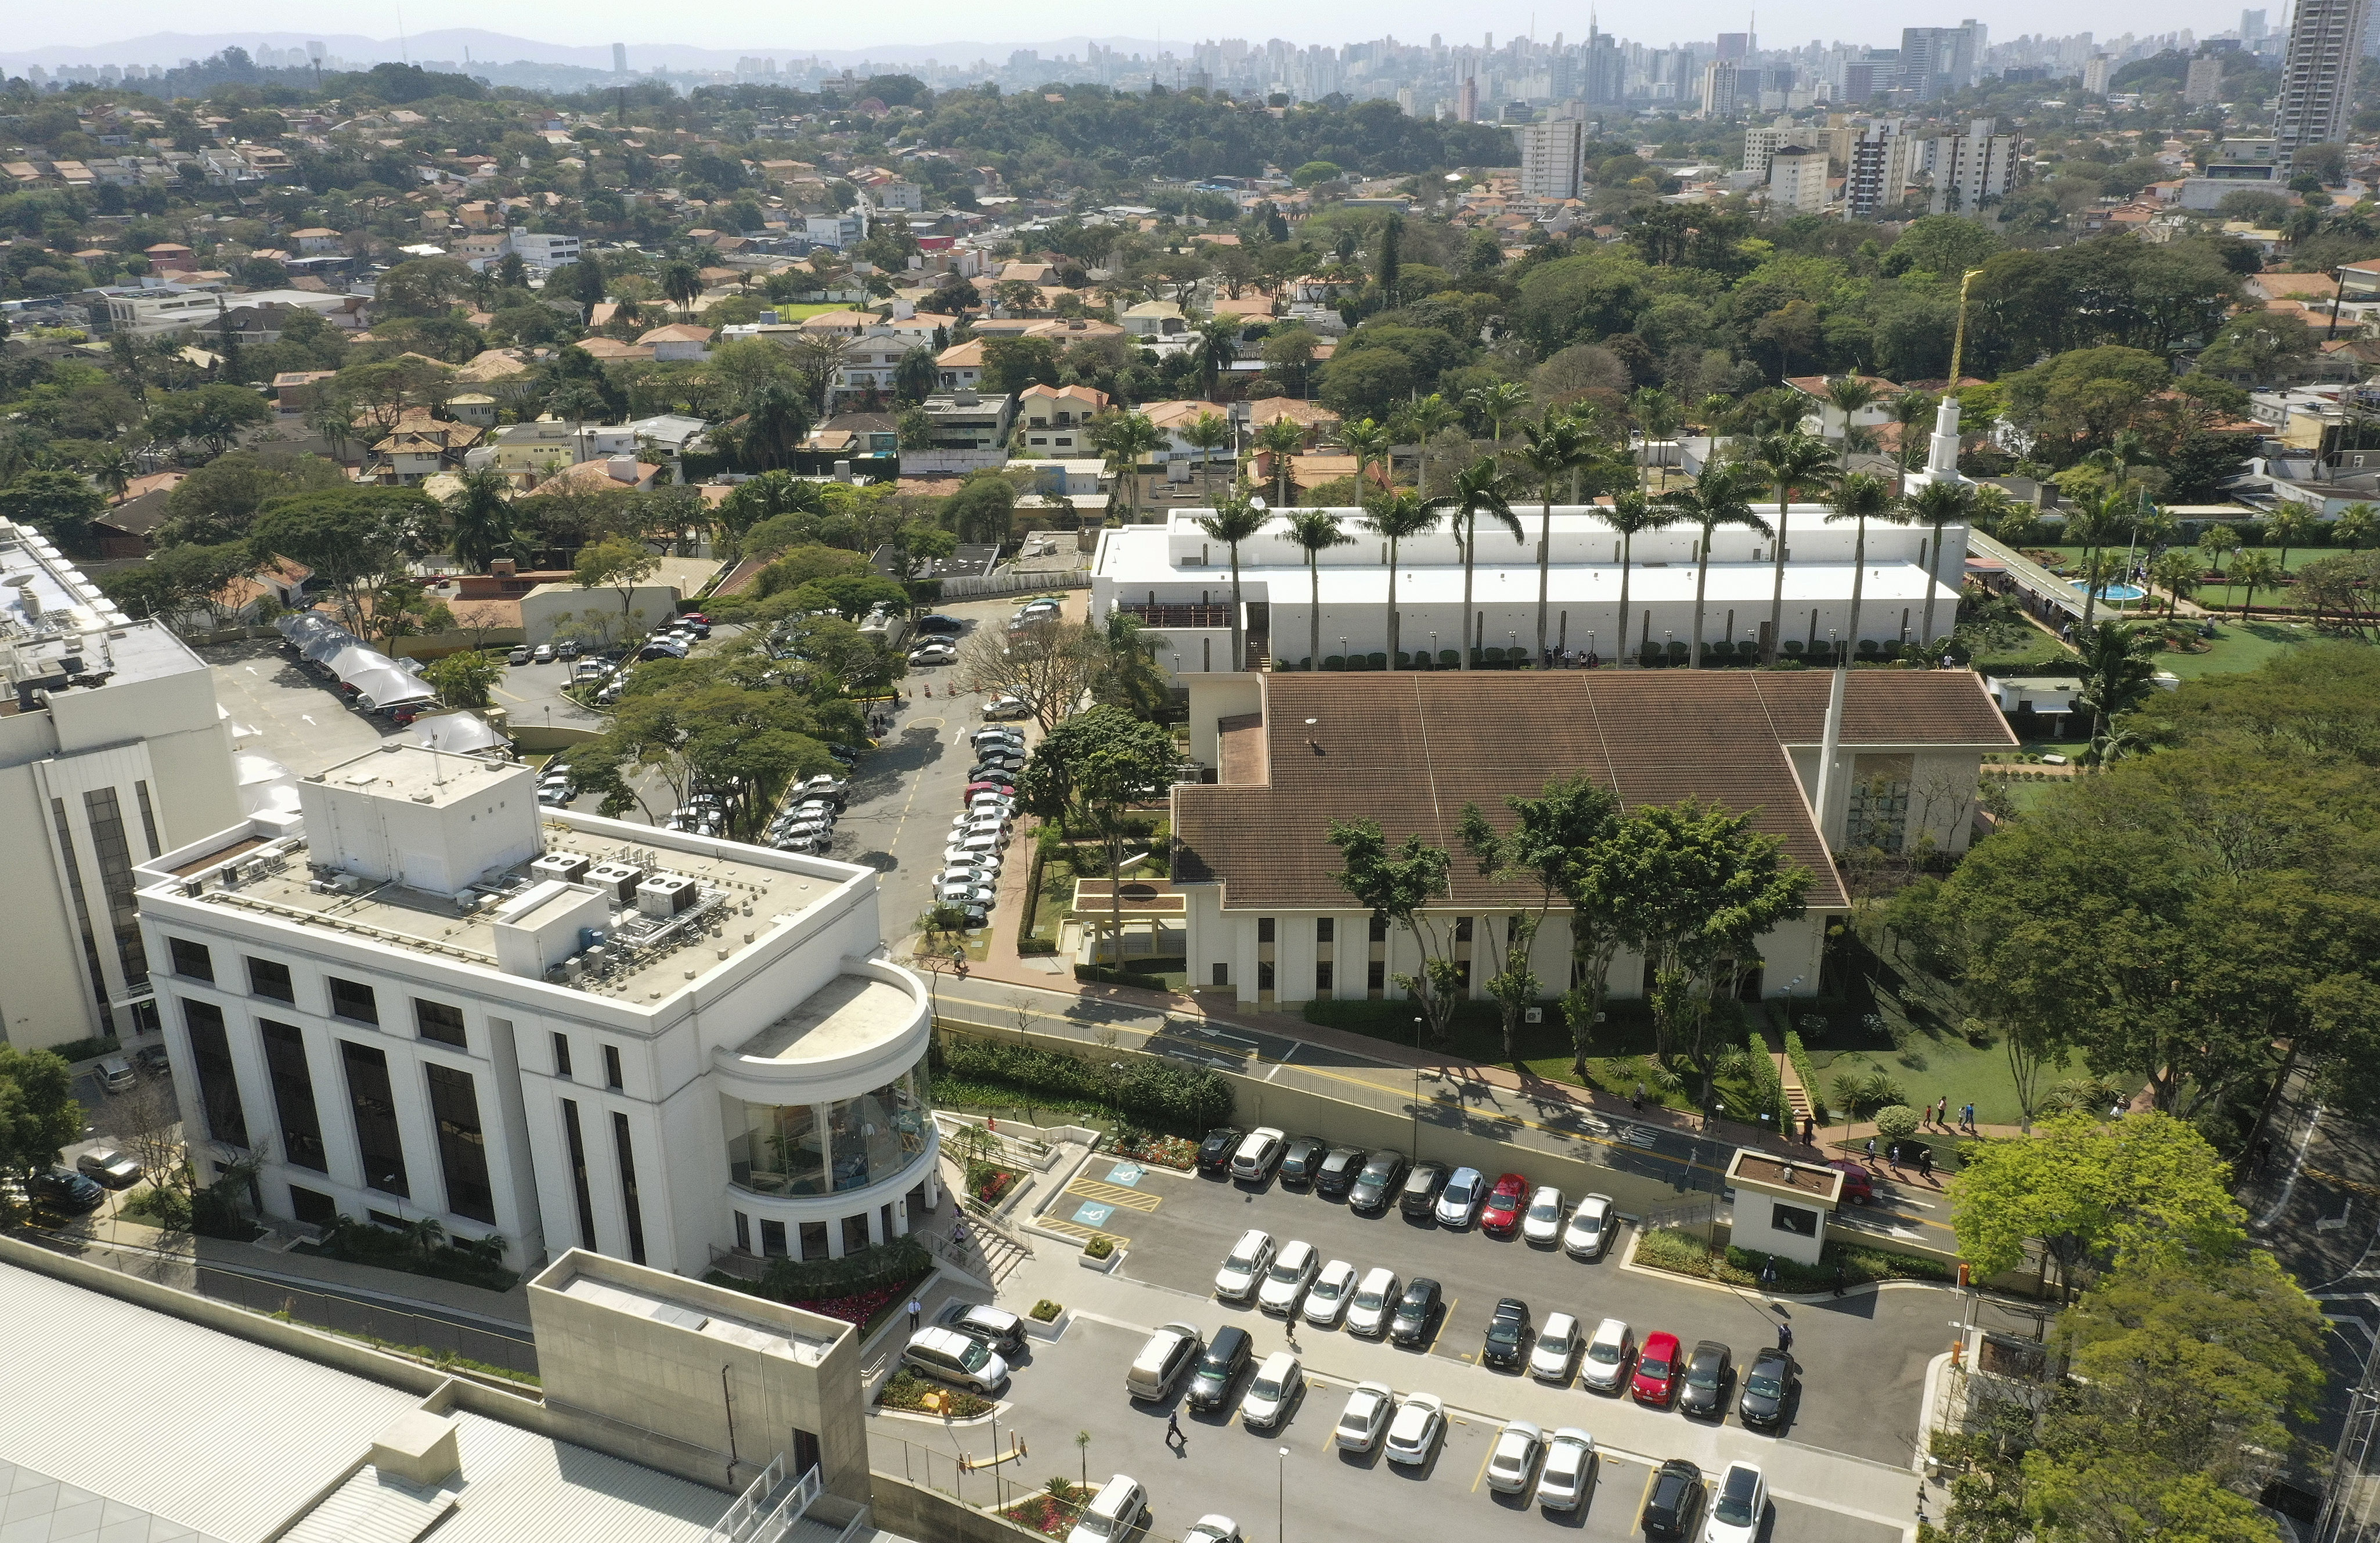 The Sao Paulo Brazil Temple and Visitors' Center in Sao Paulo, Brazil, on Aug. 31, 2019.